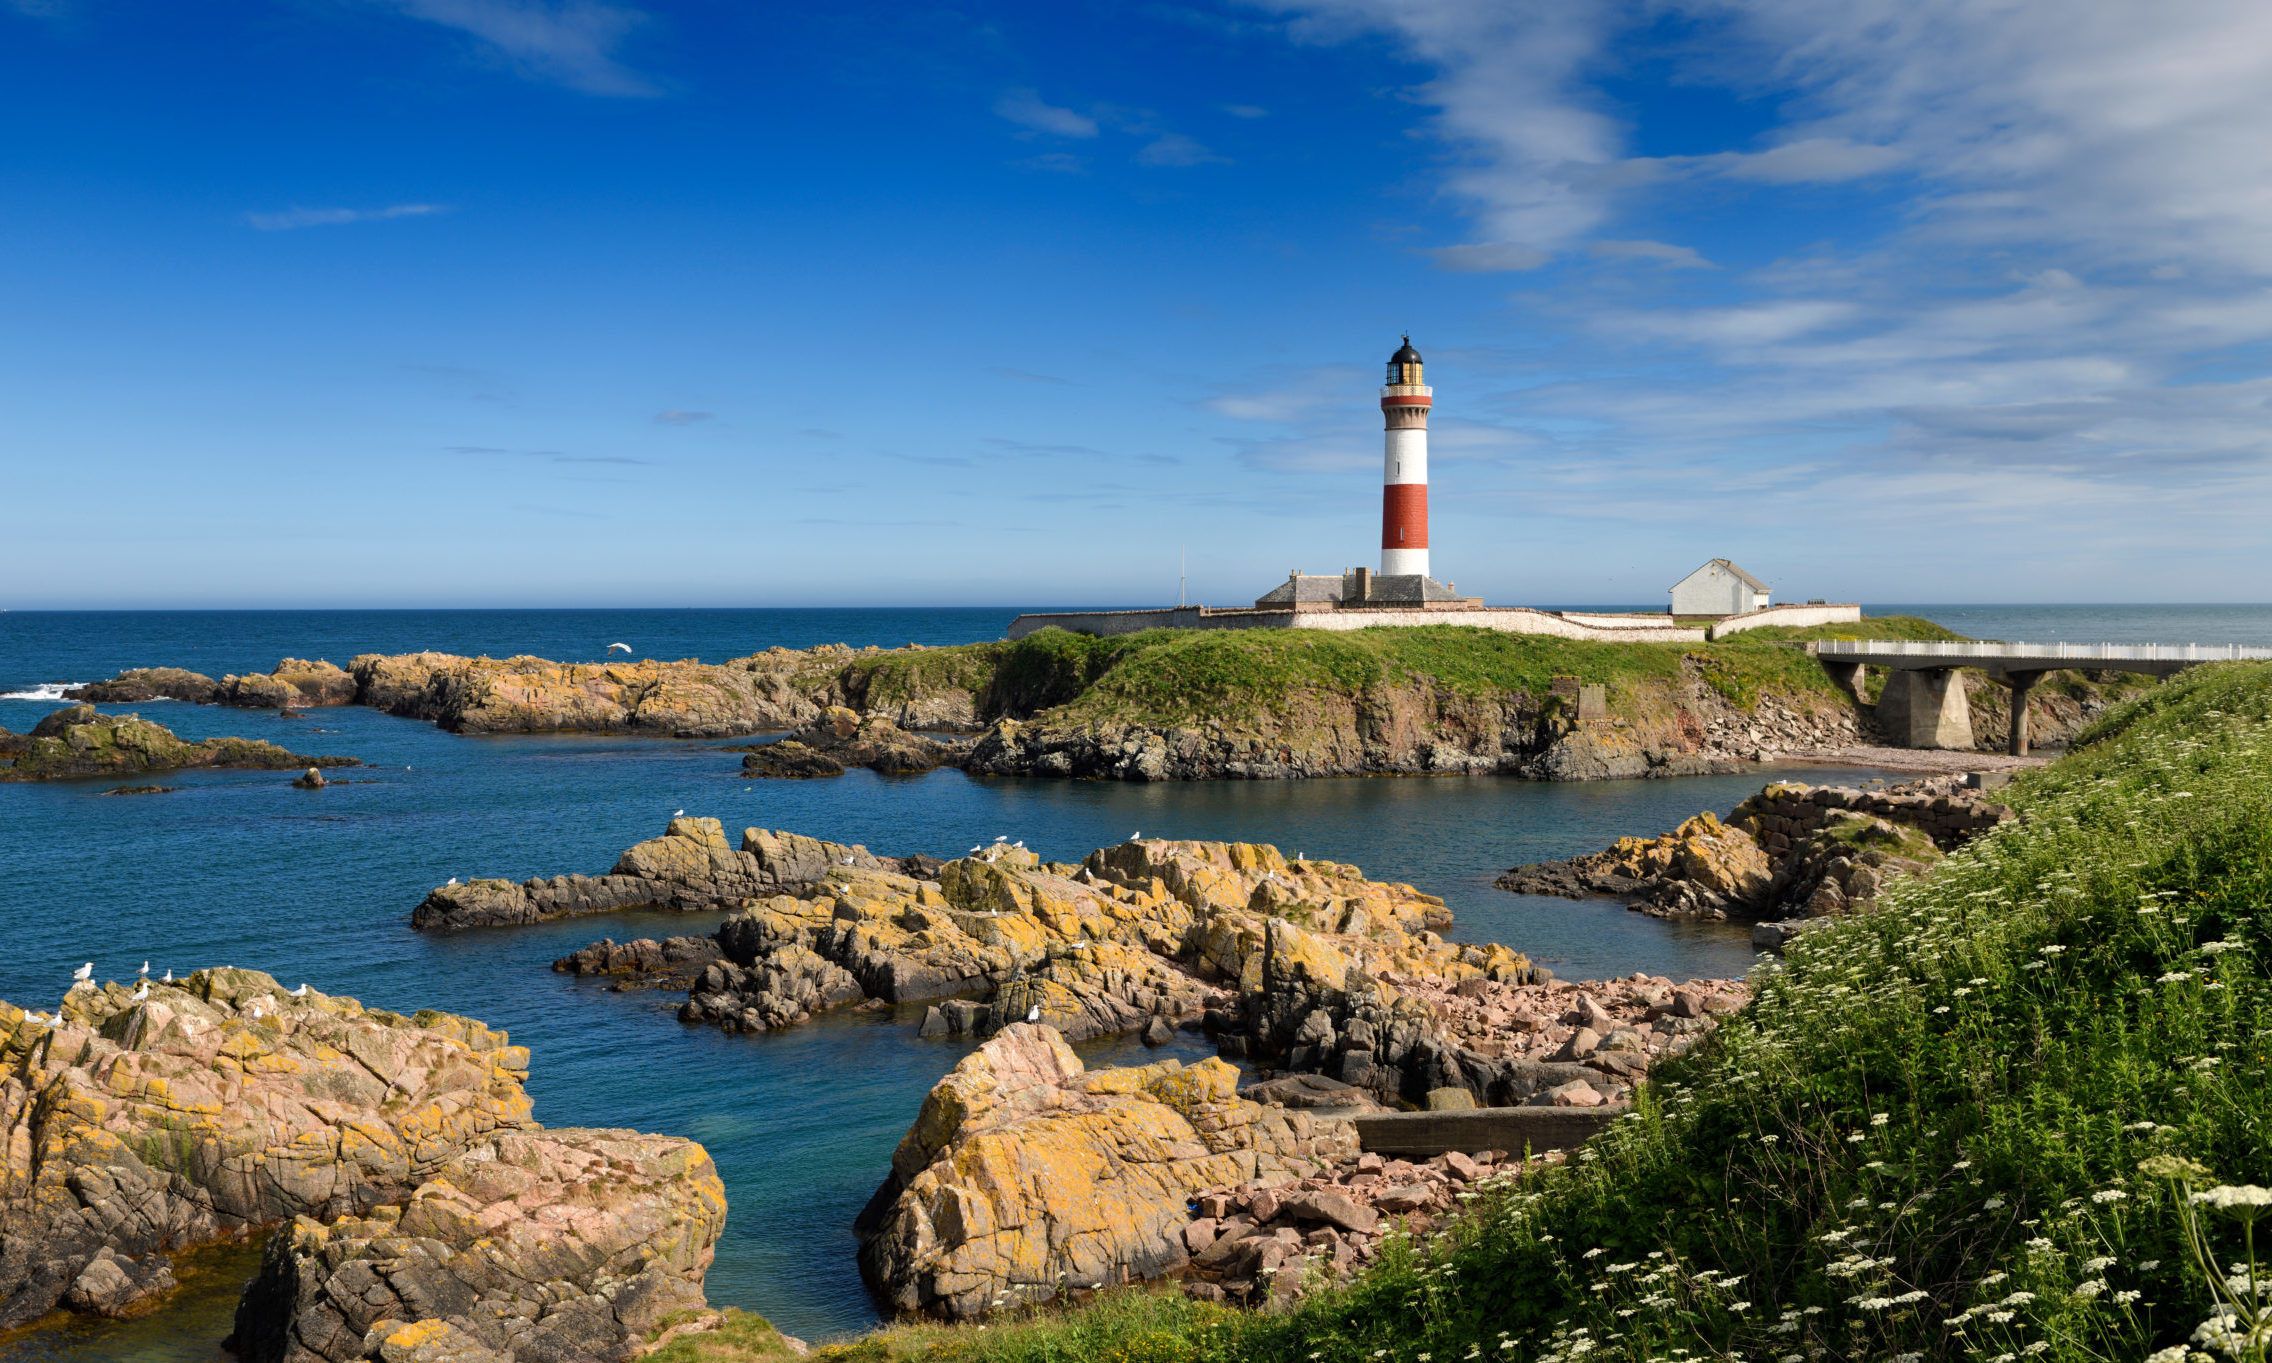 GO VISIT: Blue skies over Buchan Ness headland and its lighthouse